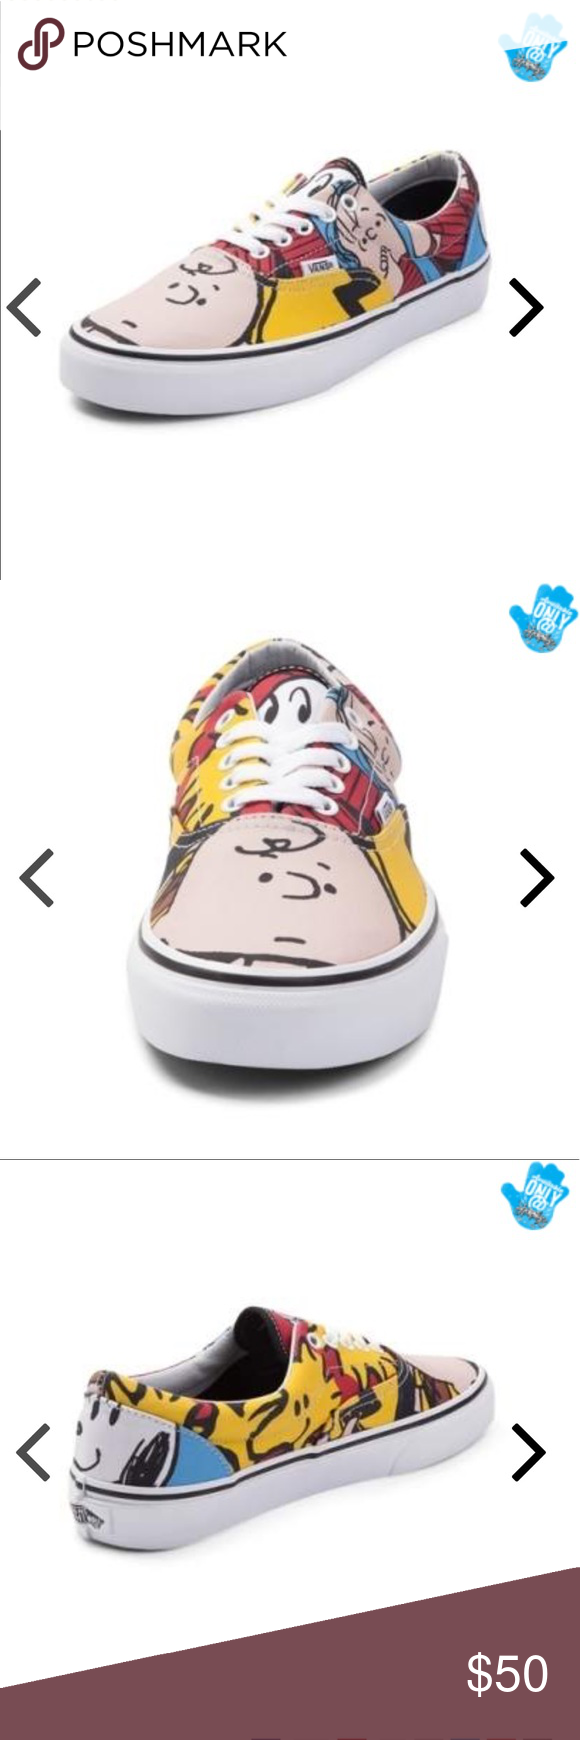 c29357443b Peanuts Gang Skate Shoe from Vans NEW W  BOX Team up with Charlie Brown and